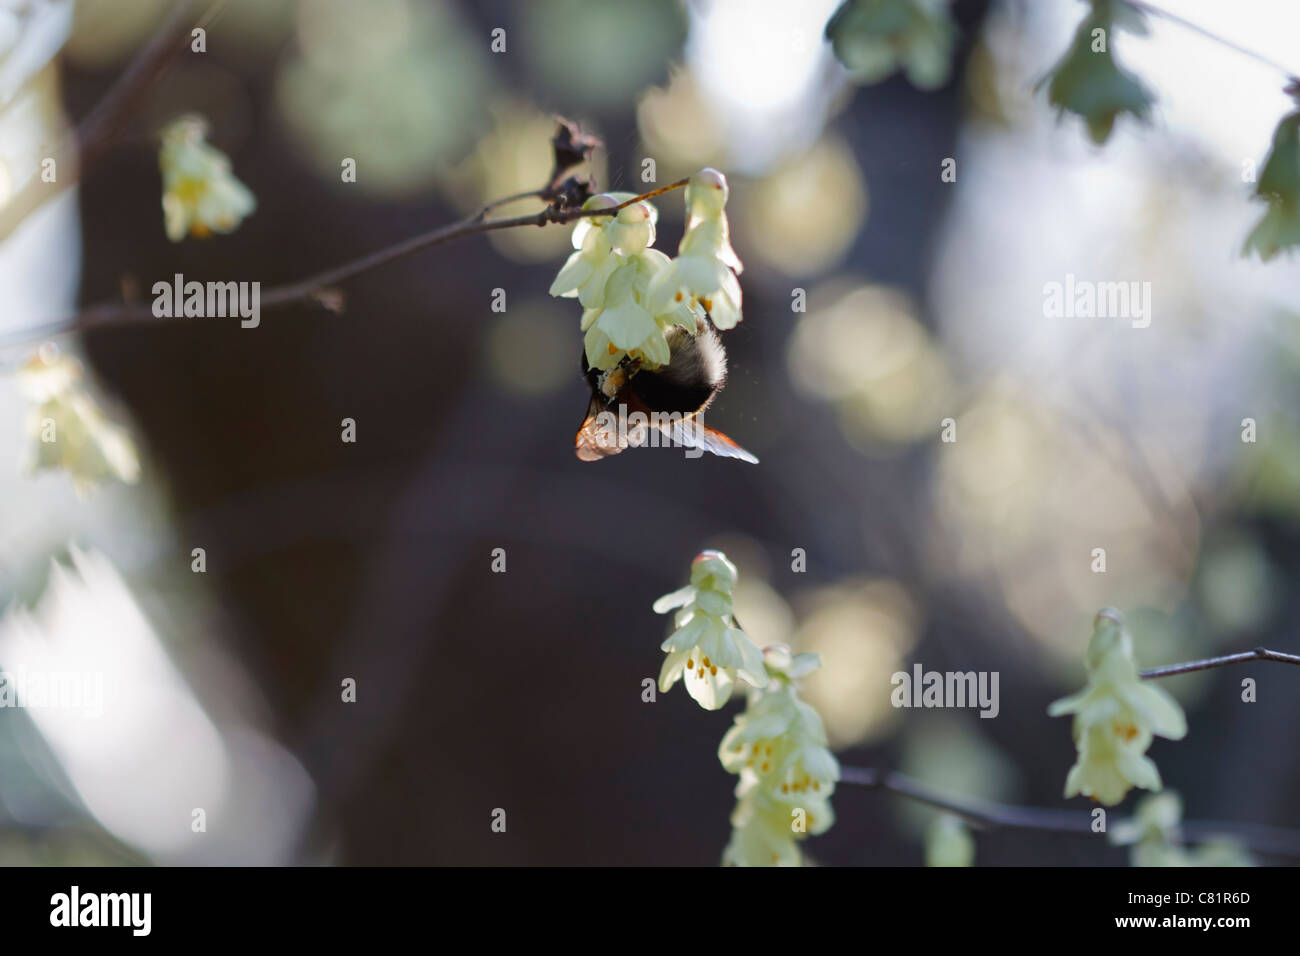 Close up image of blossom Corylopsis pauciflora in spring time with a bumblebee. - Stock Image